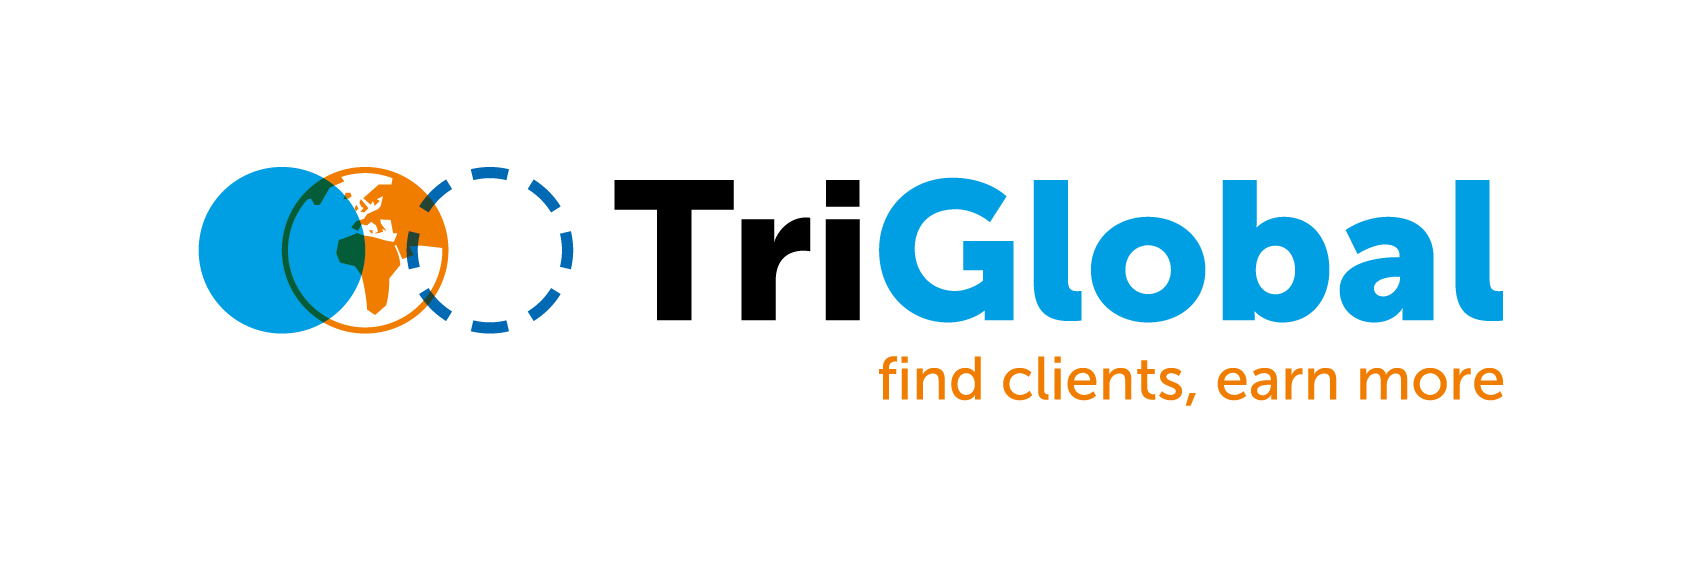 Tri Global find clients, earn more